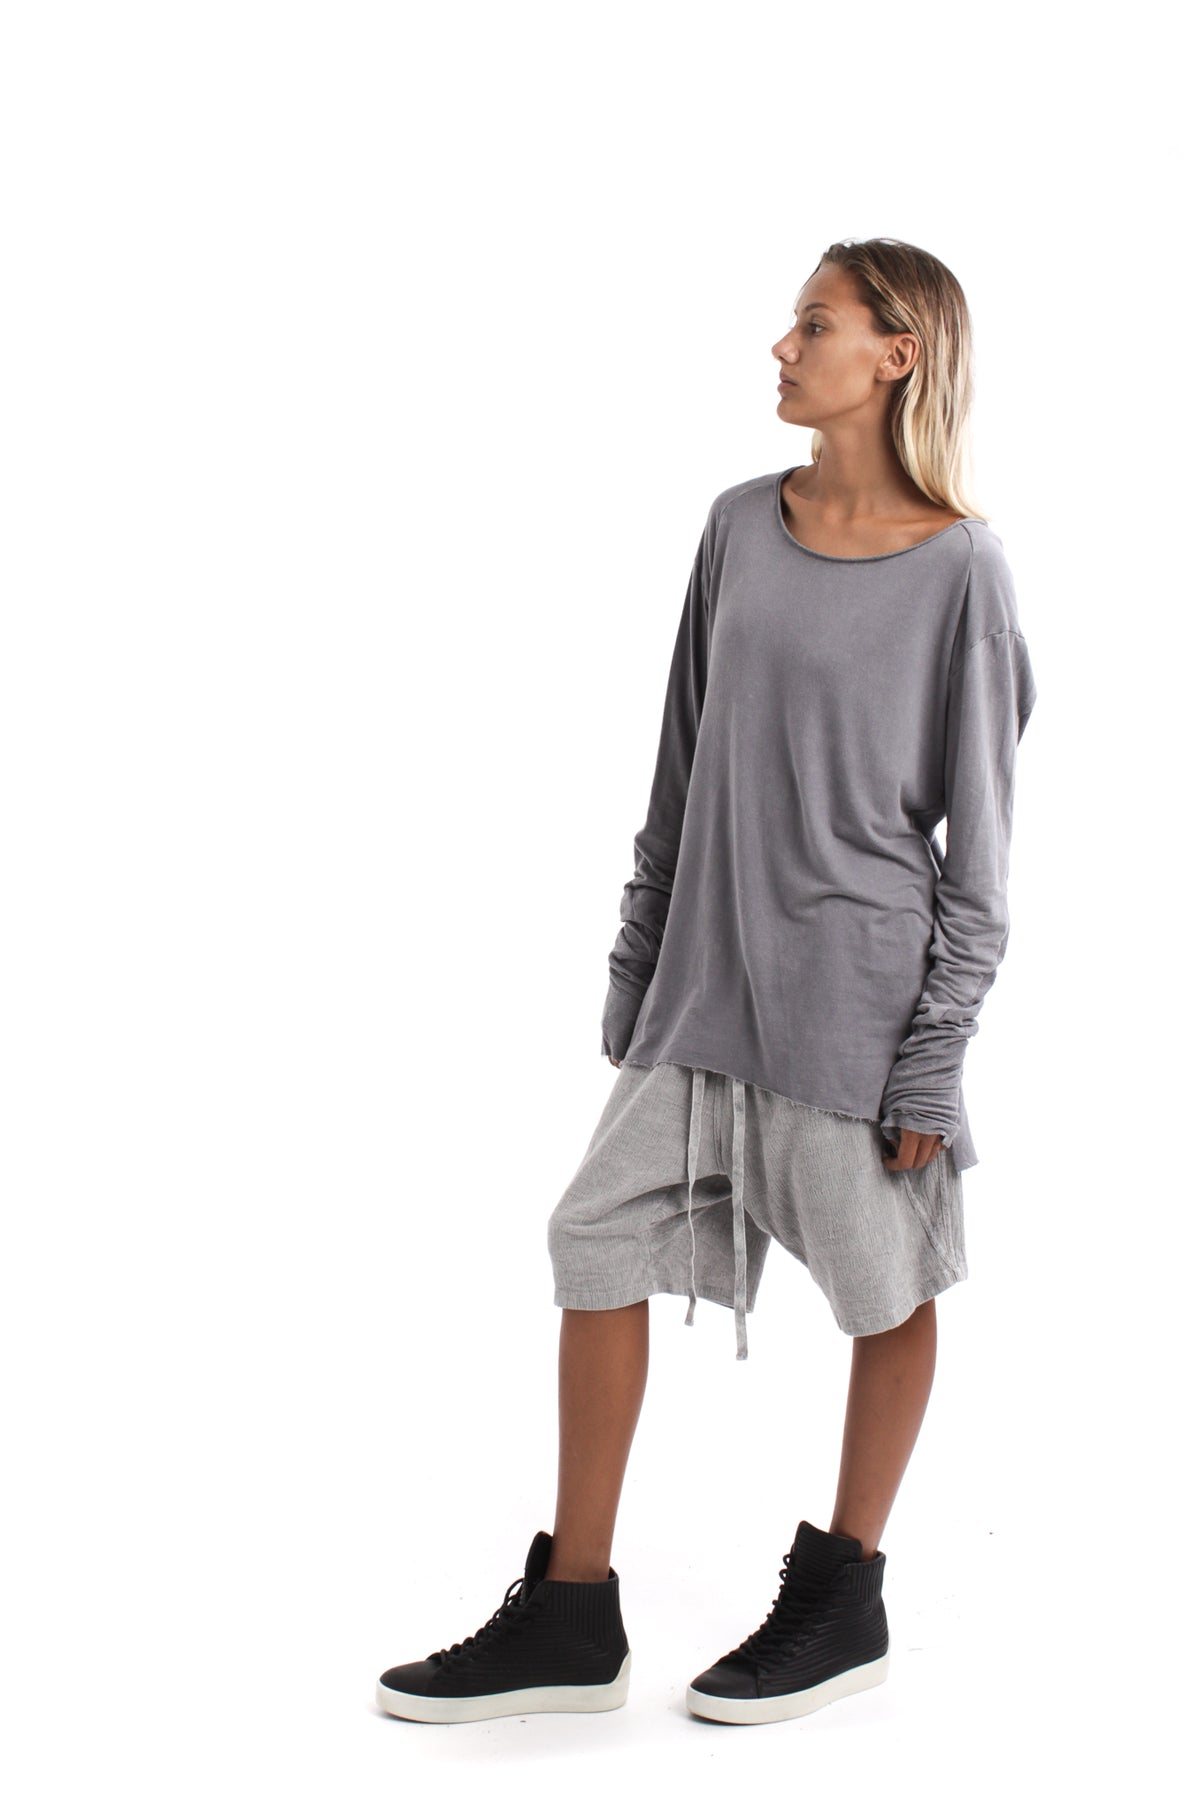 Nordic design, scandinavian design, danish design, grey linen cotton, cotton jumper, luxury cotton jersey, cotton t shirt, grey cotton, oversize cotton top, oversize